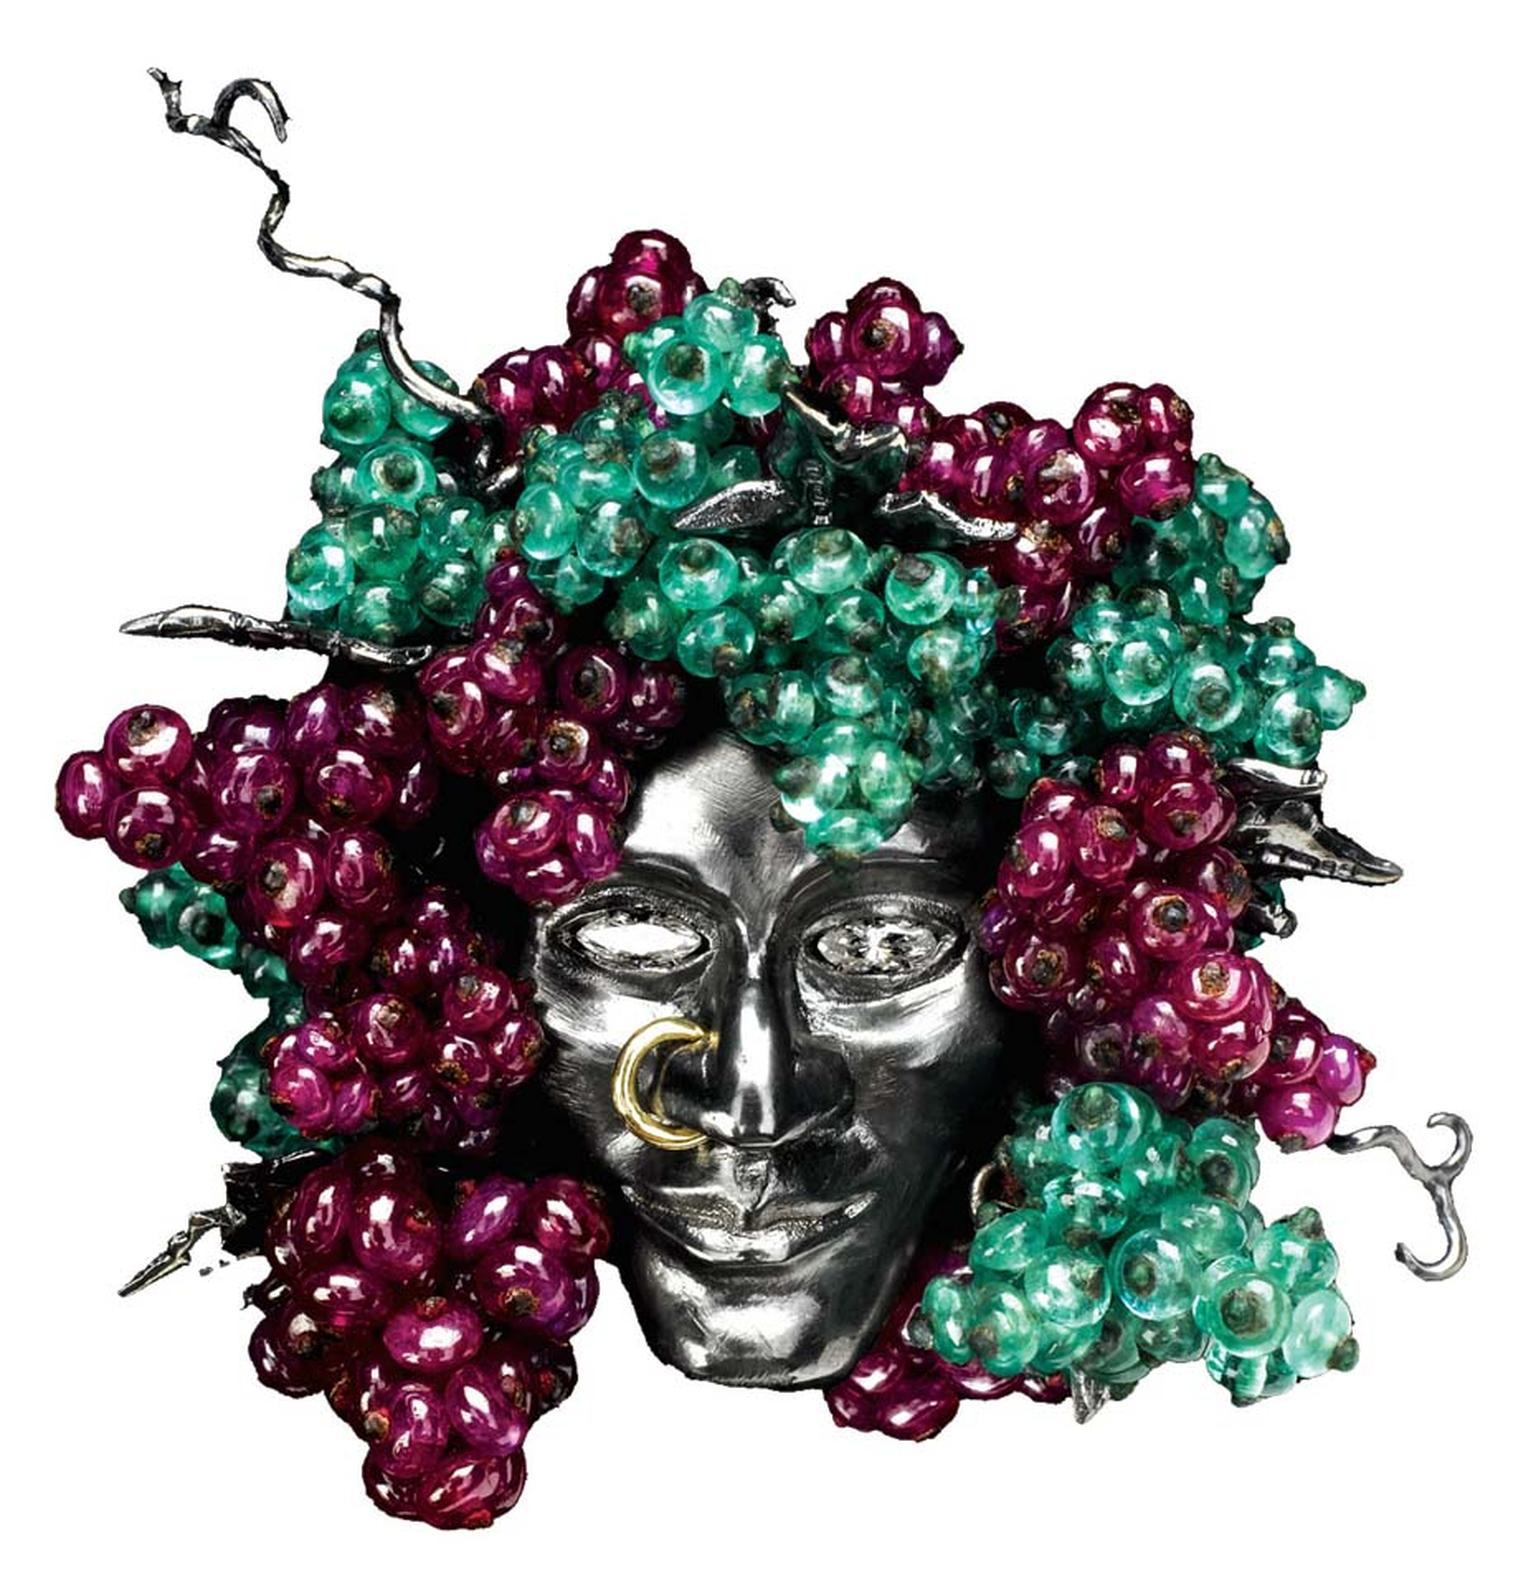 Solange Azagury-Partidge's Bacchus is a stunning mix of diamonds and emeralds set in 18ct blackened white gold, and is on sale with Paddle 8 with an estimate of £5,000 to £7,000.